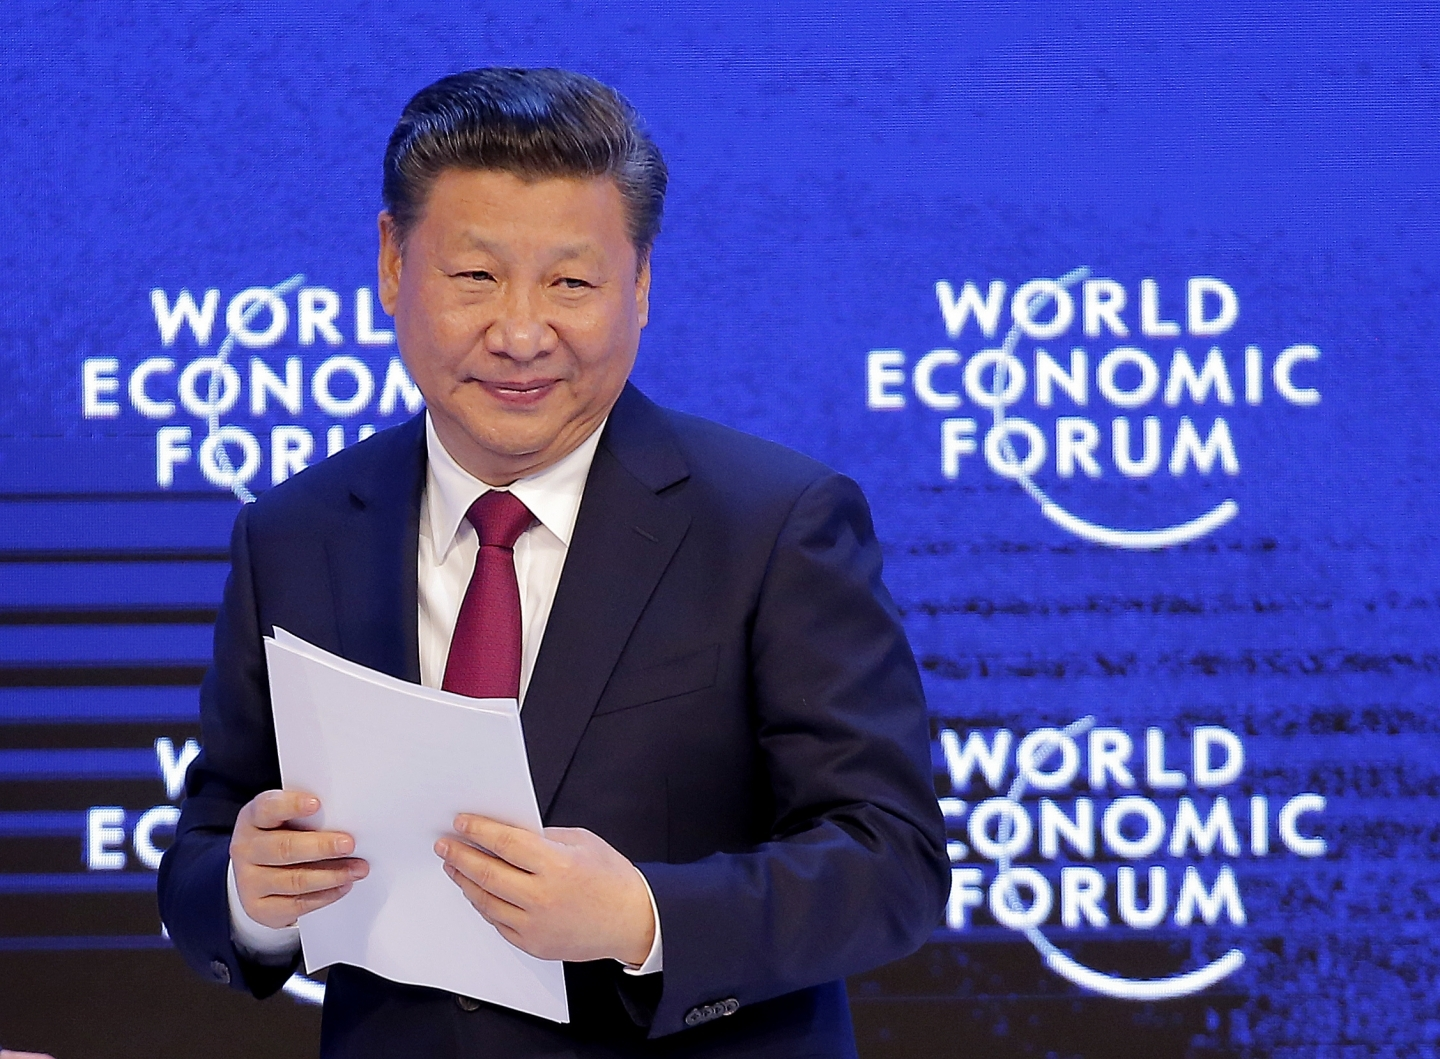 China's President Xi Jinping at the World Economic Forum in Davos, Switzerland (AP Photo/Michel Euler)